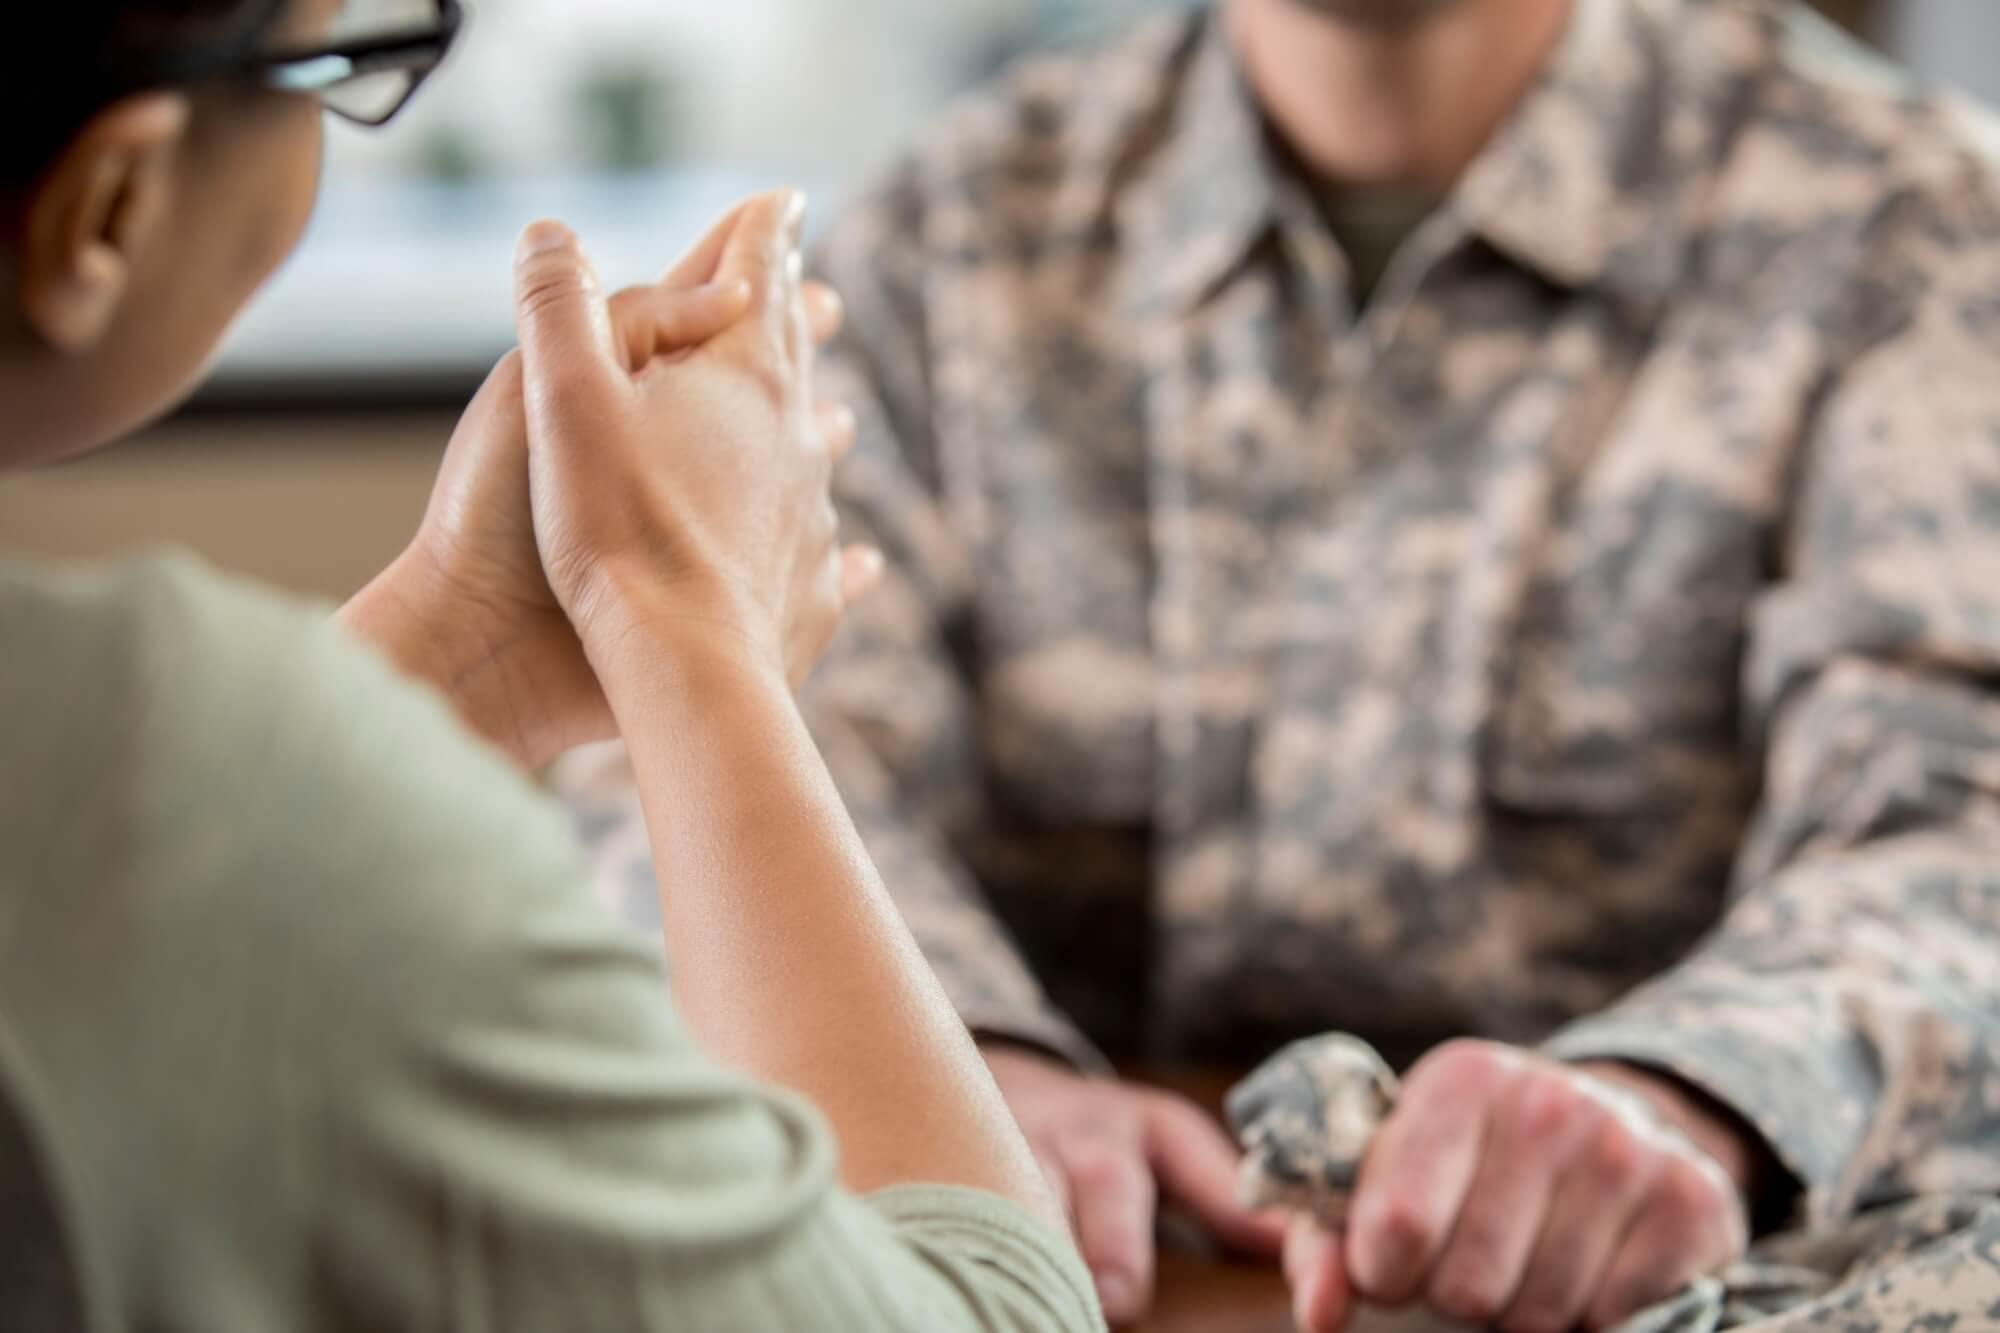 In-Person Social Contact Tied to Reduced Psychiatric Symptoms